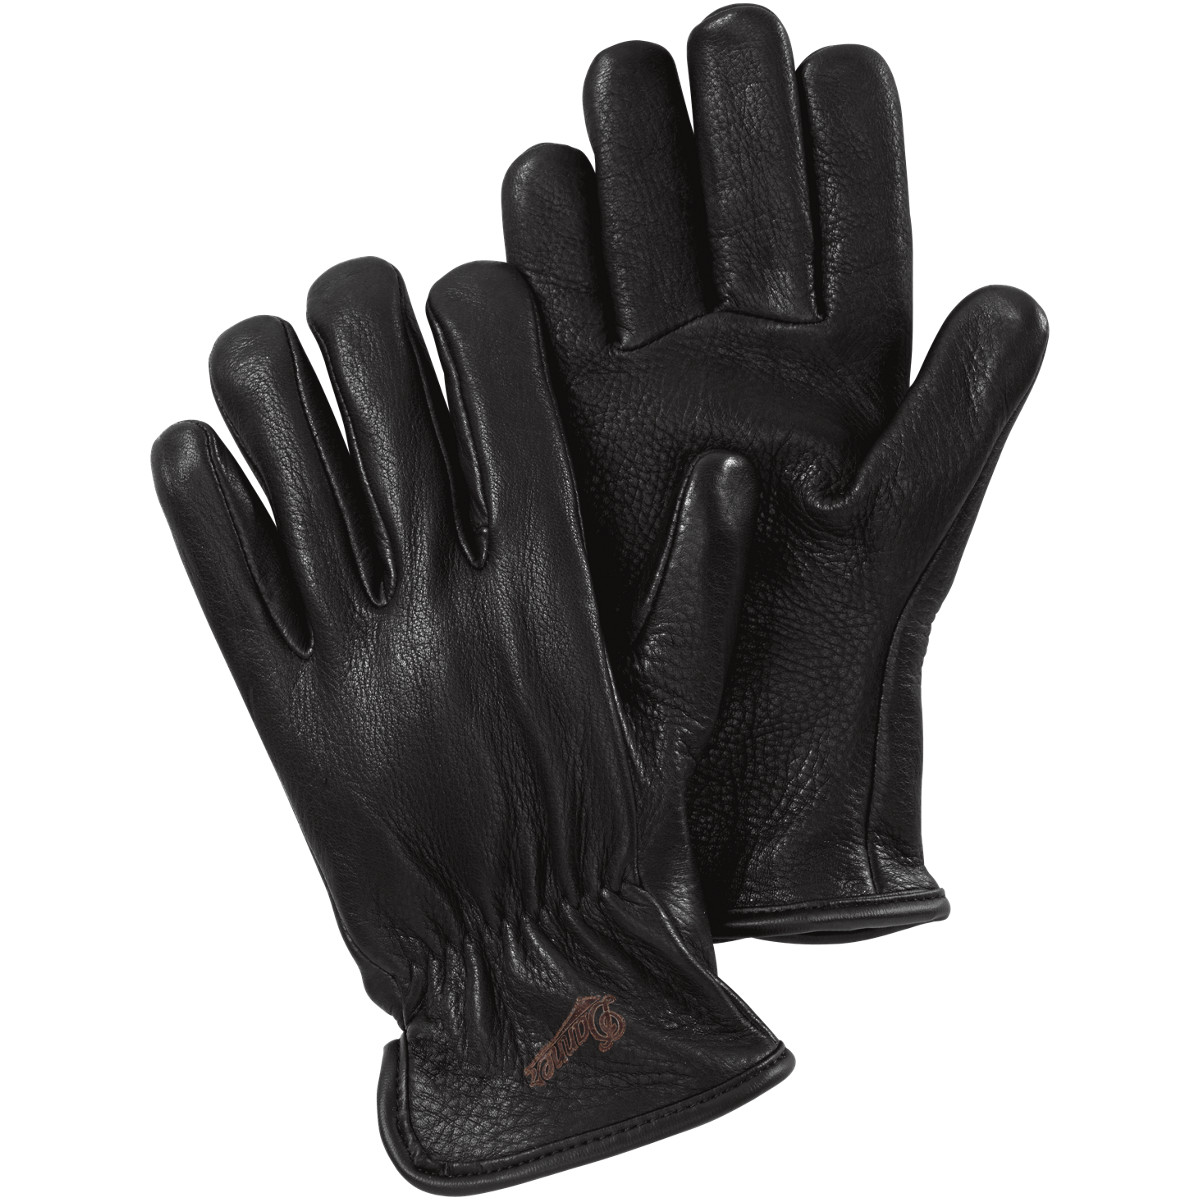 Glove - Deerskin - Merino Lined Black